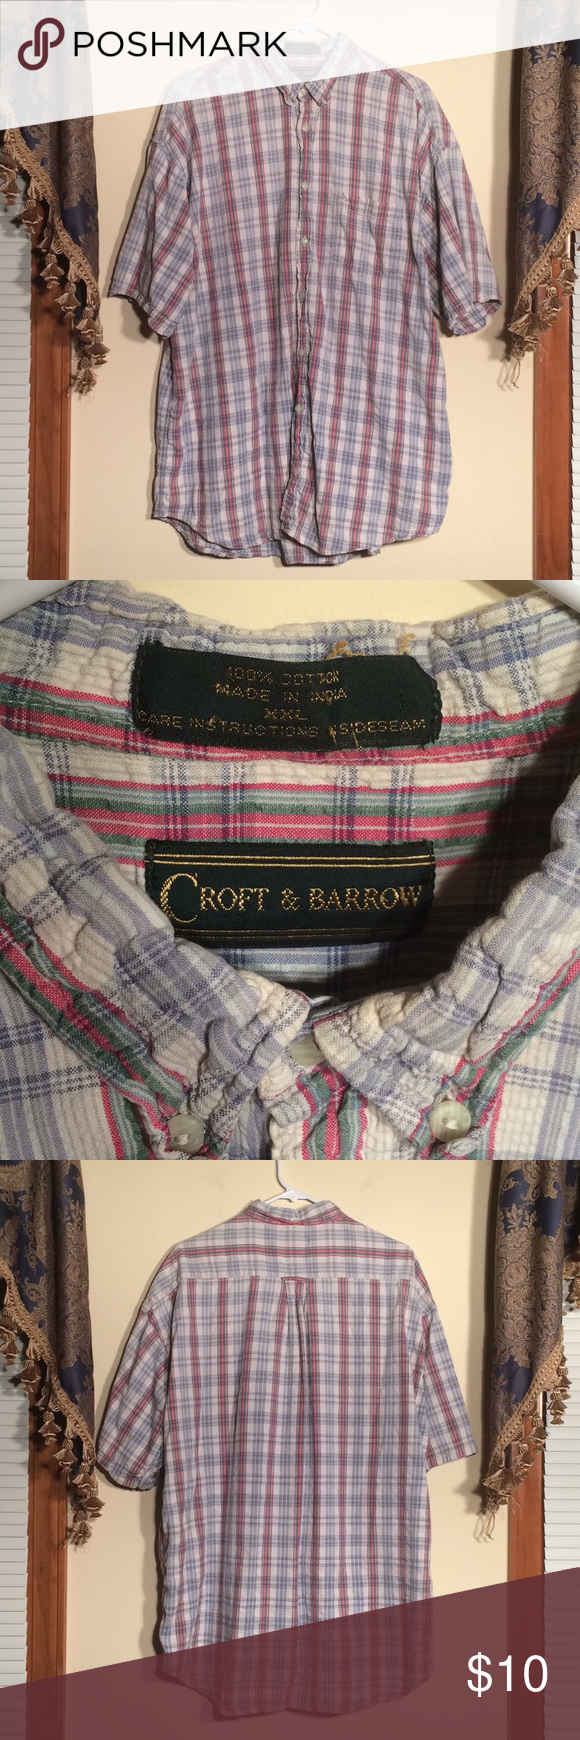 Croft Barrow Xxl Men S Shirt With Images Shirts Casual